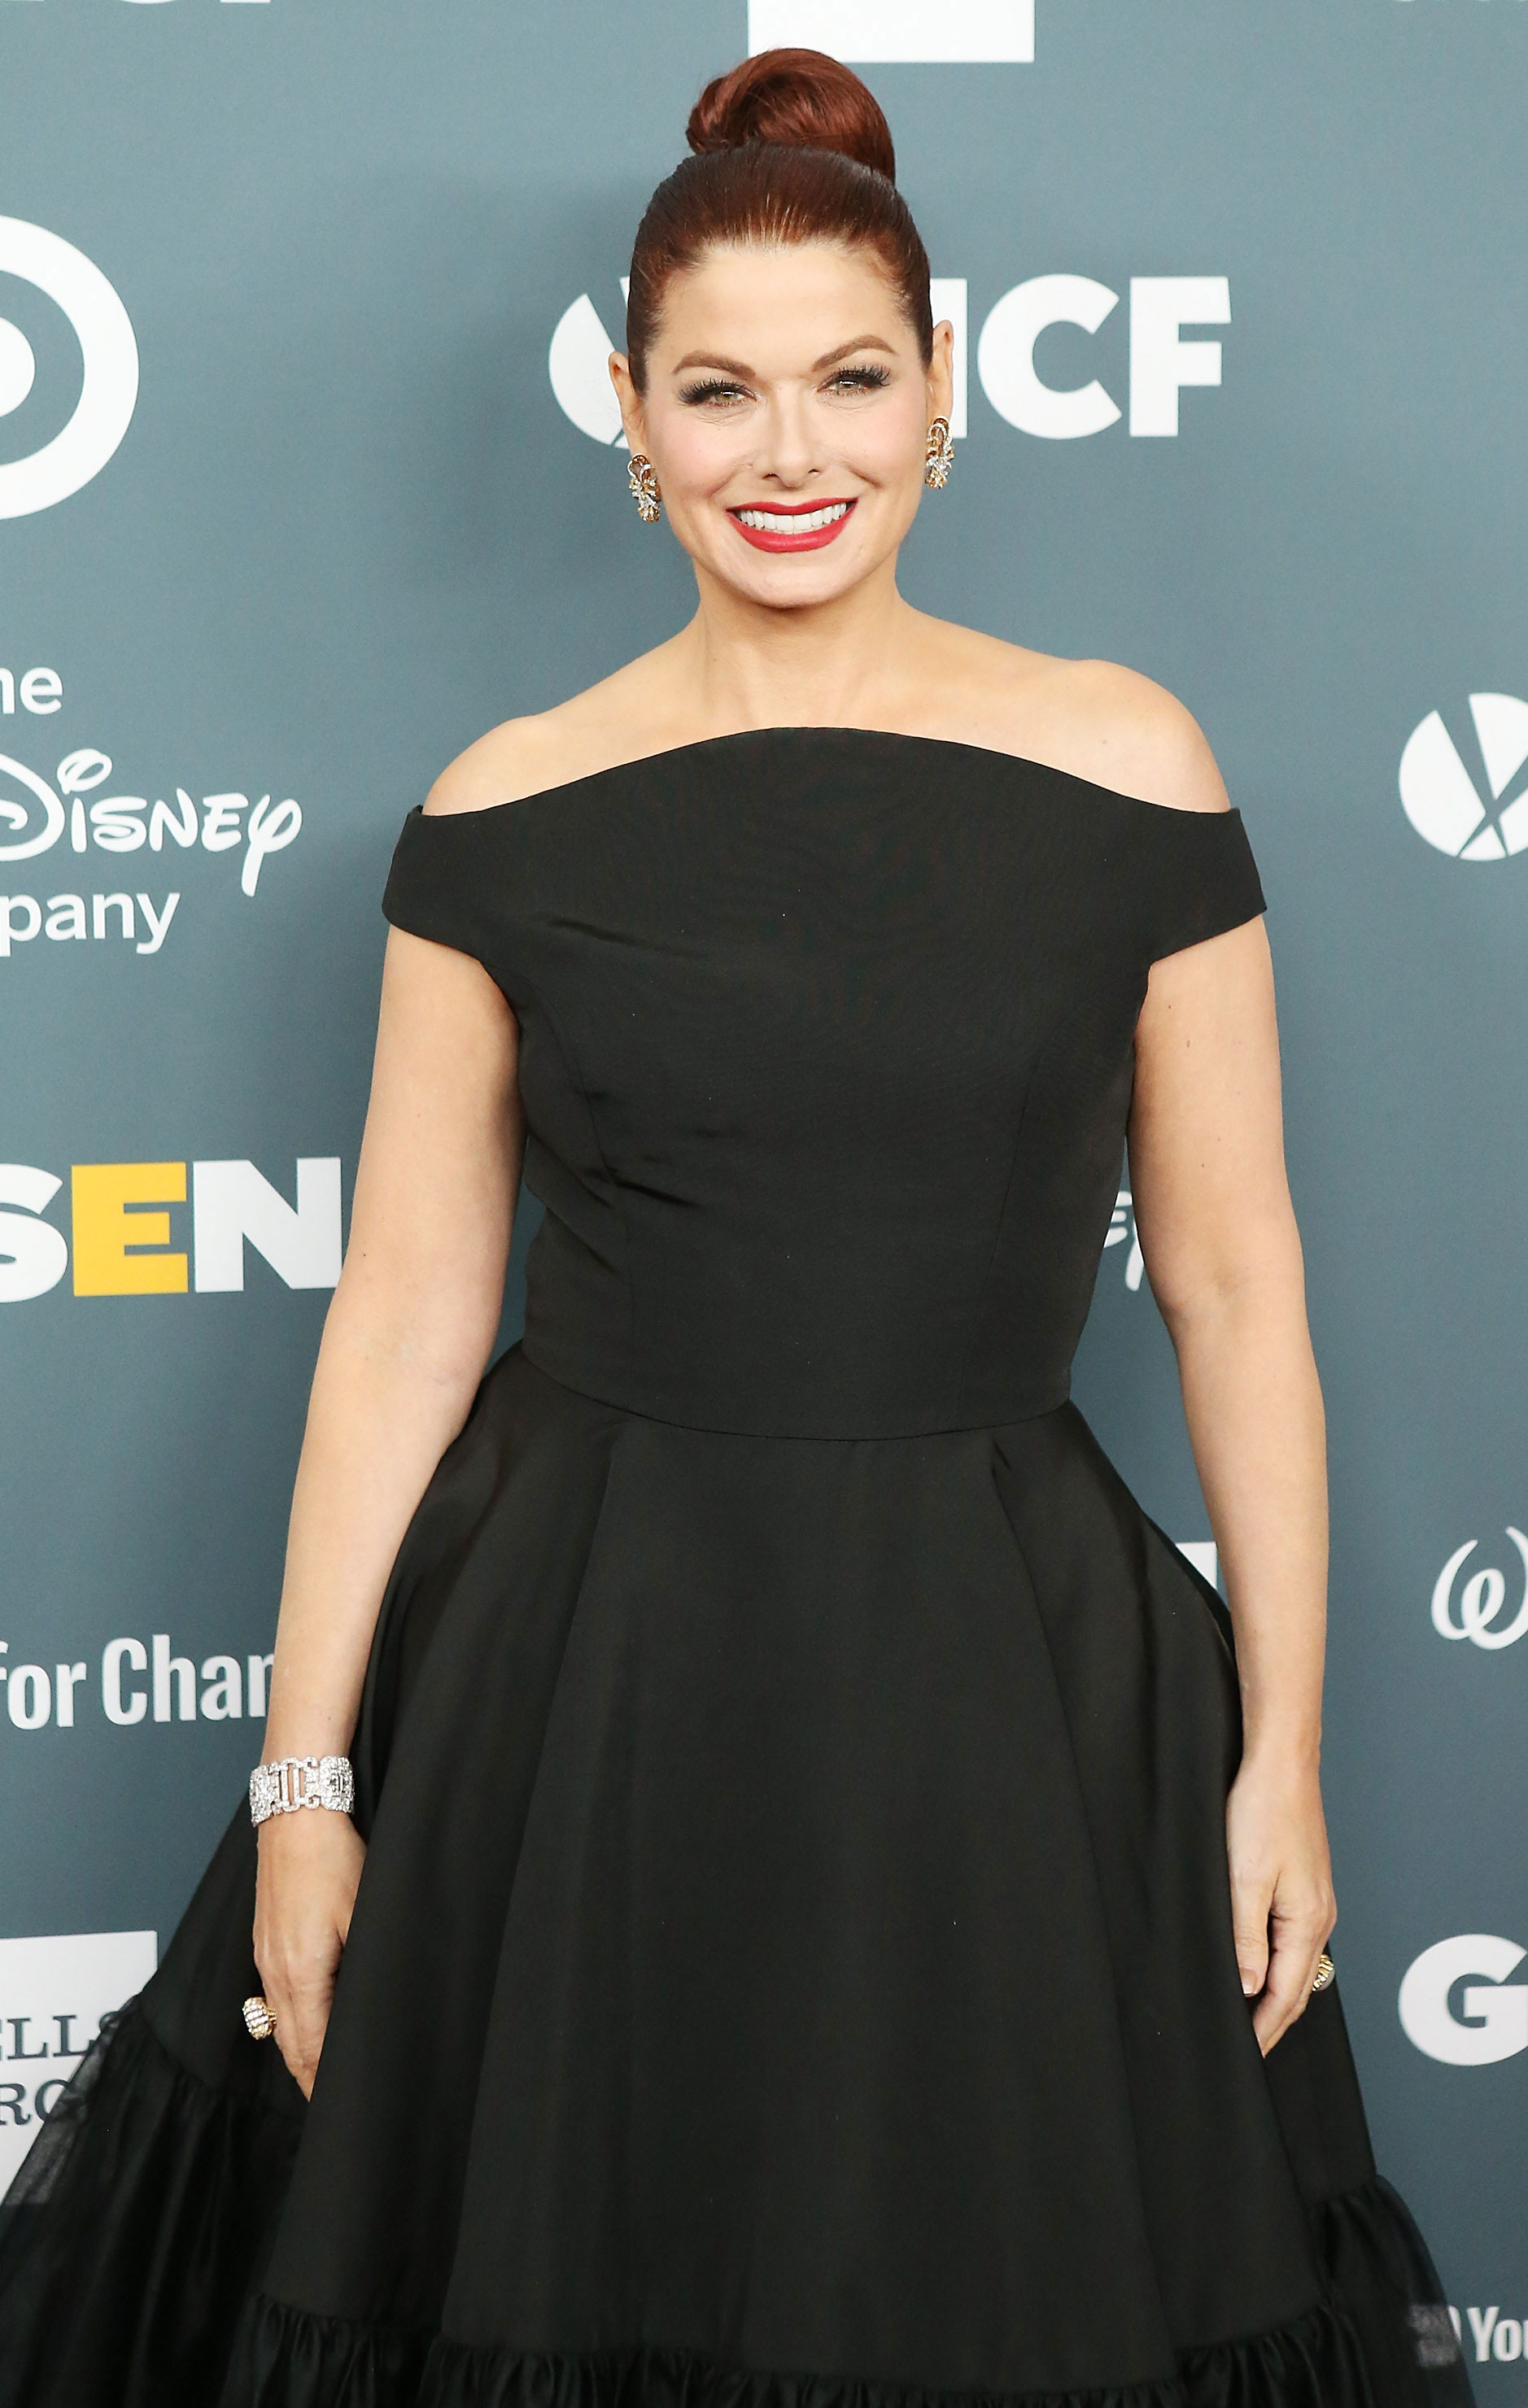 """Santa's Naughty or Nice List - """"I think I'm on the nice list,"""" the Will & Grace actress tells Us. """"I'm on the nice list because this year I worked on becoming more involved in organizations that are focused on helping people, and that's something I'm proud of and I think Santa should reward me for it."""""""